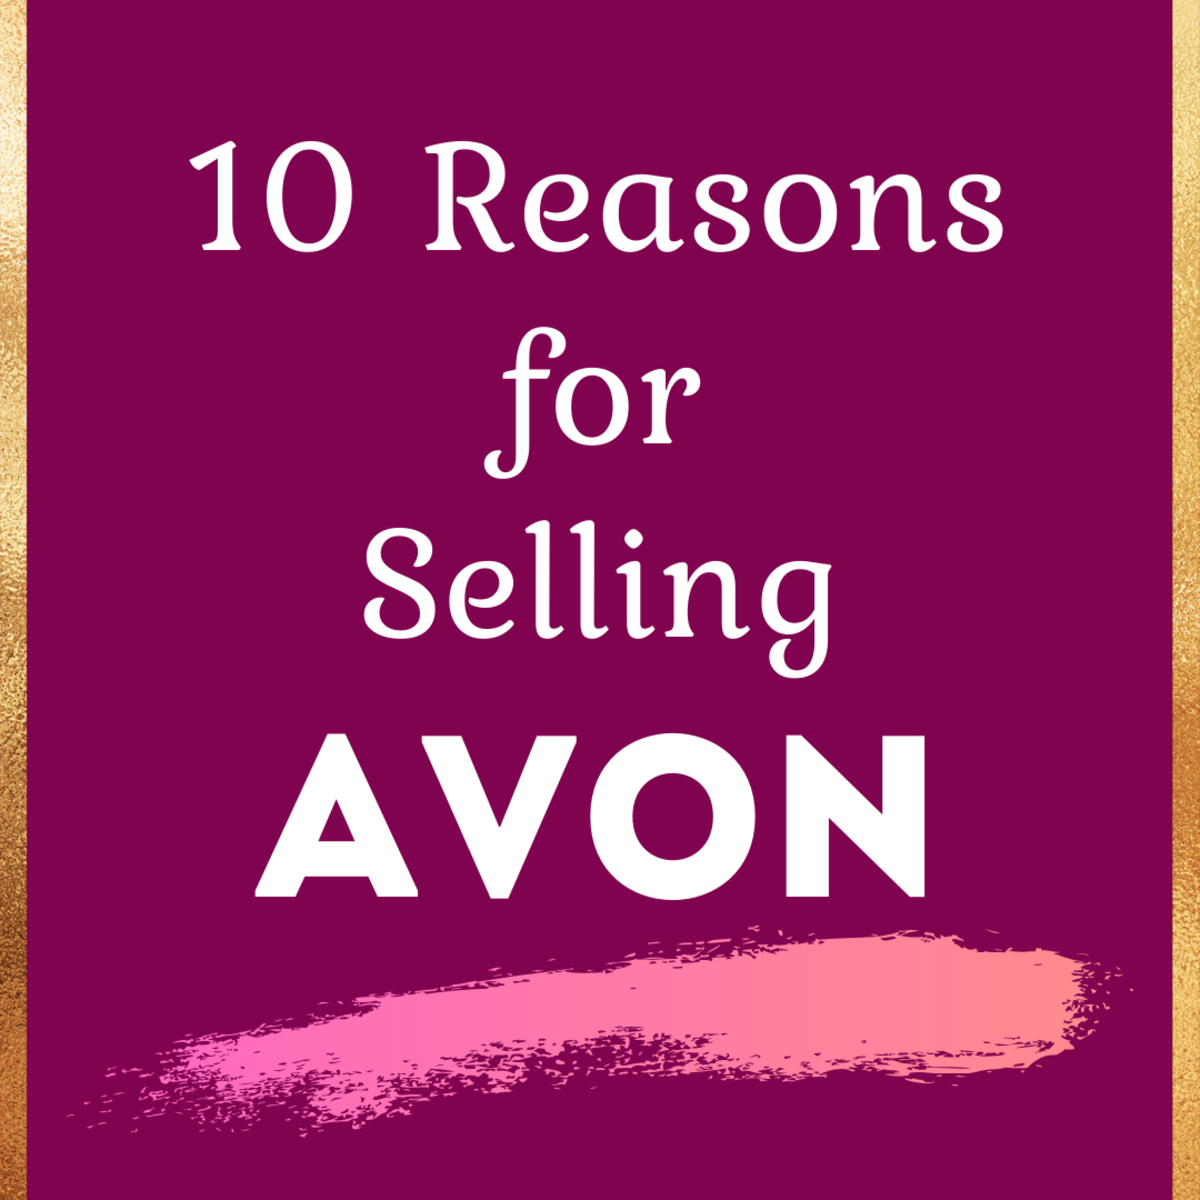 Should I Sell Avon? 10 Reasons to Become an Avon Representative